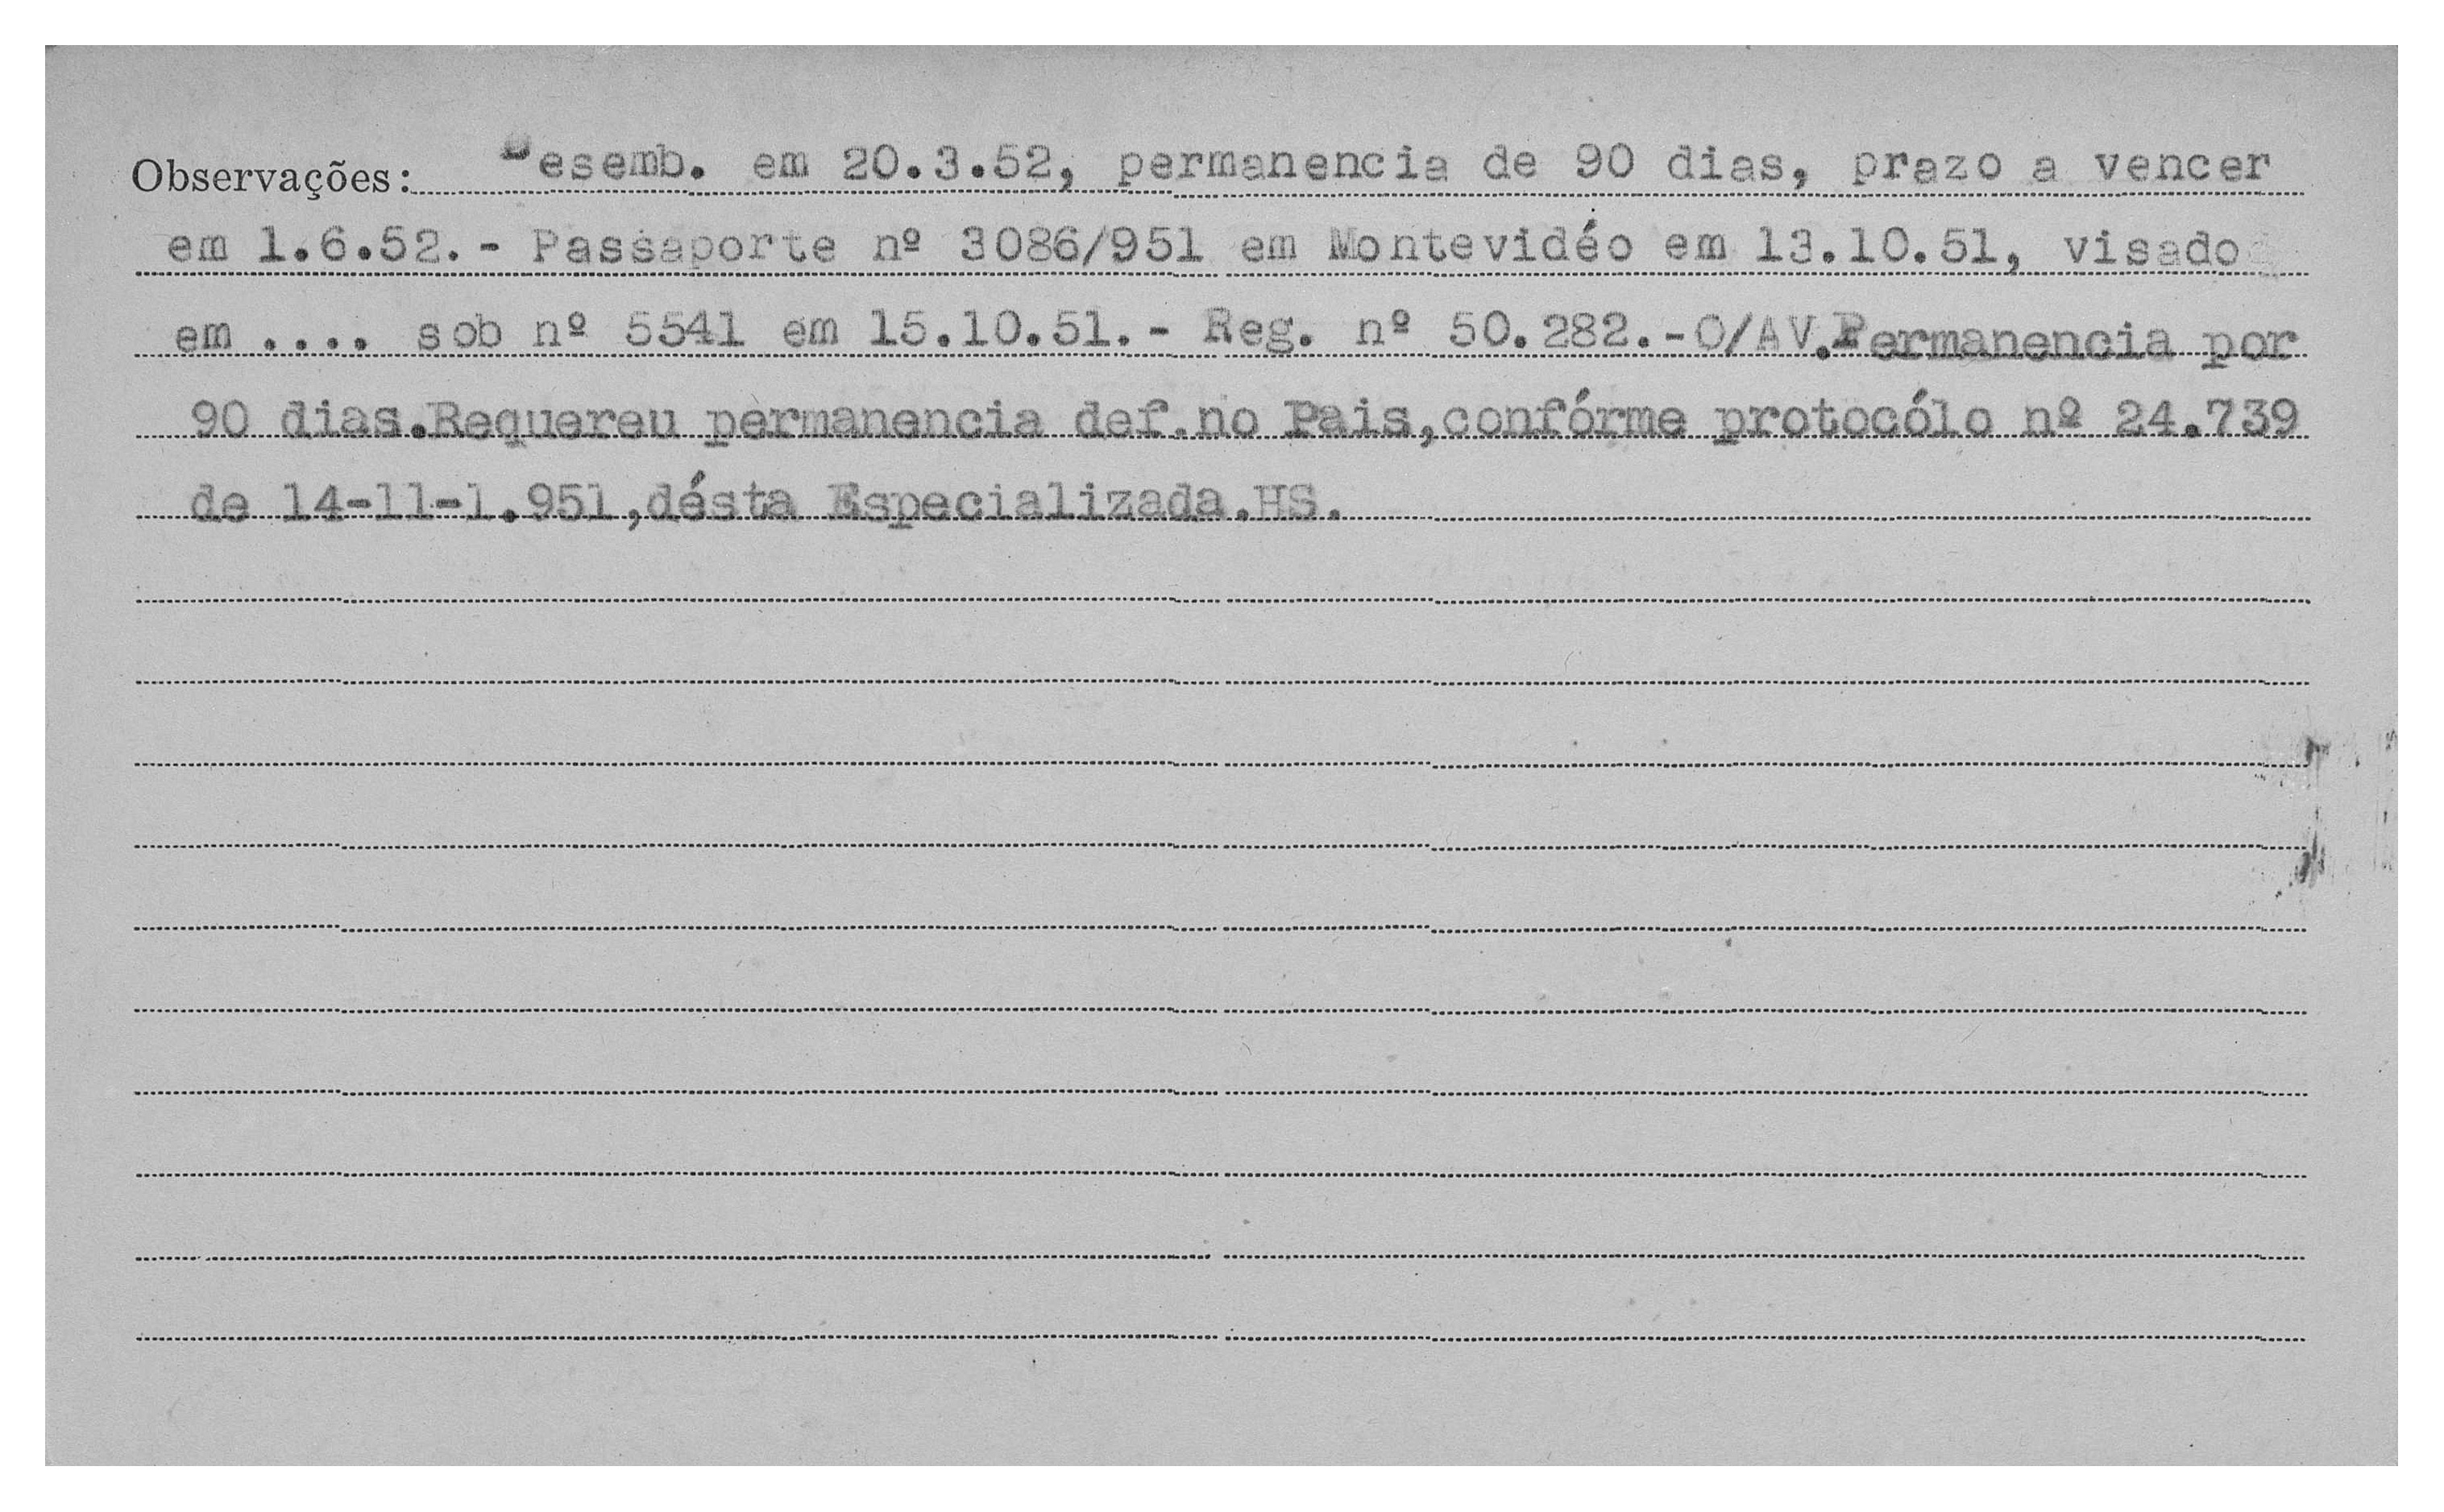 Marco-1952-06-registro-de-estrangeiro-SP-02-copy1.jpg